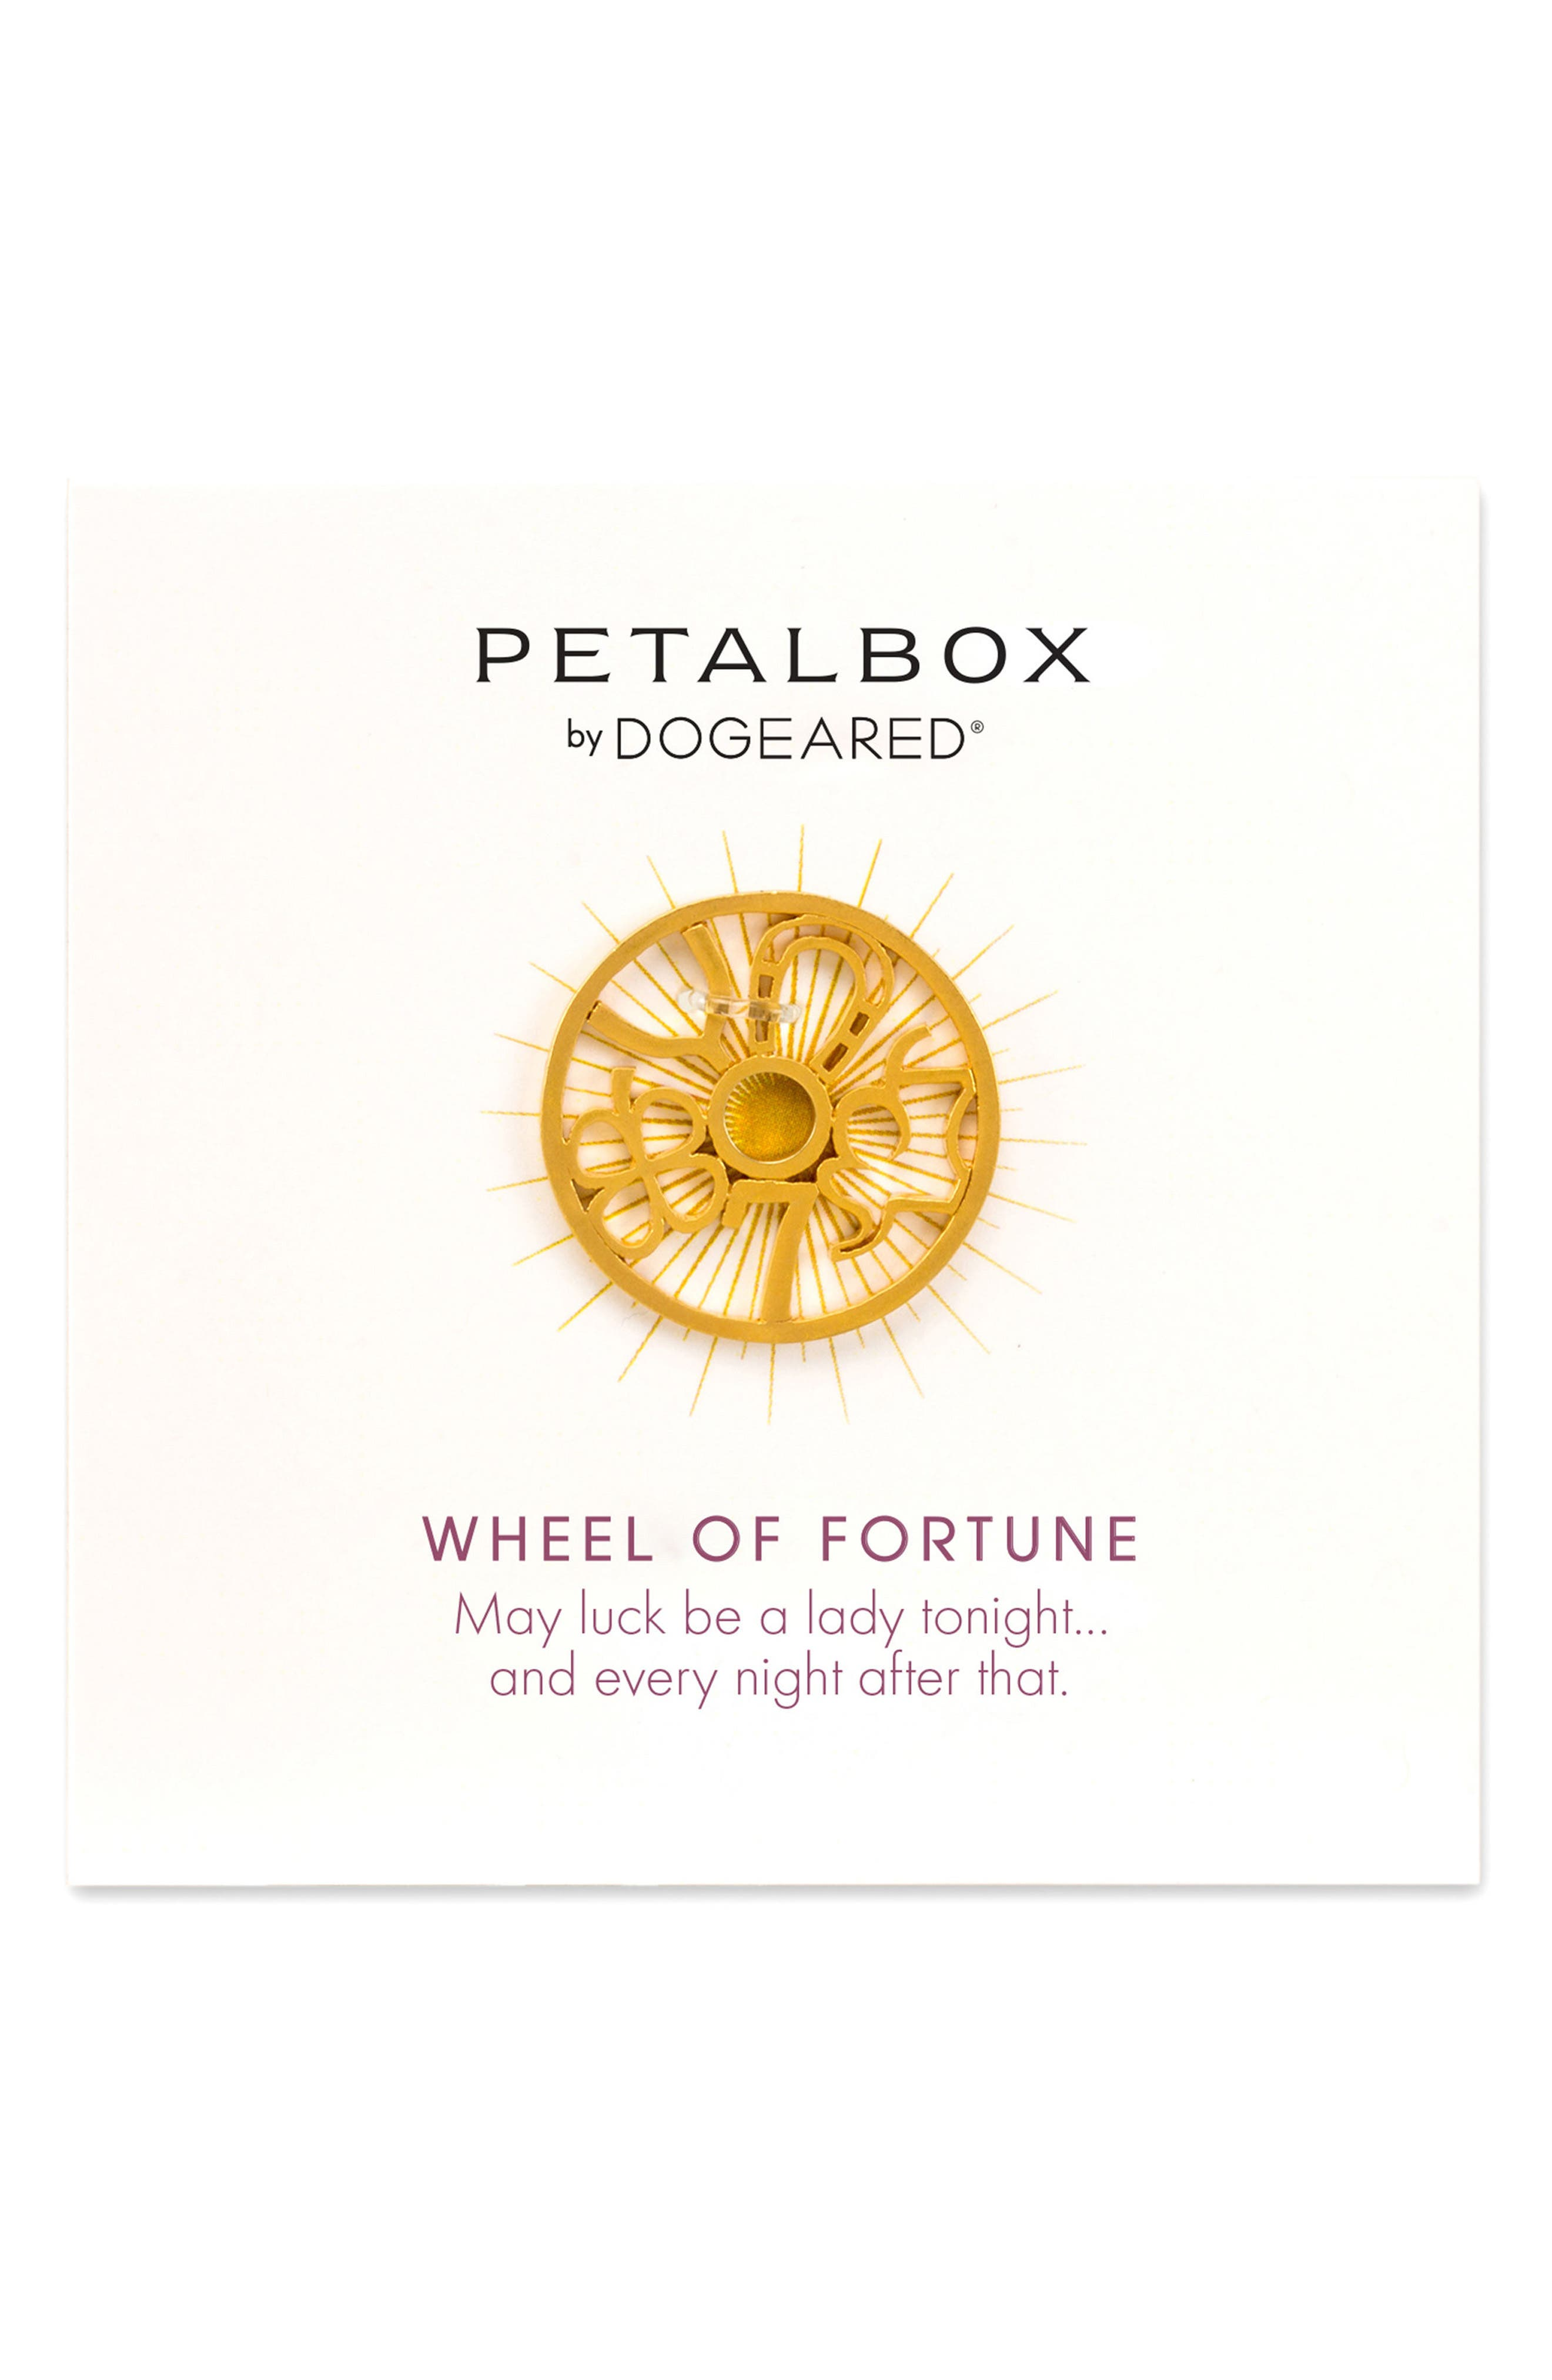 Dogeared Pedalbox Wheel of Fortune Enhancer (Nordstrom Exclusive)